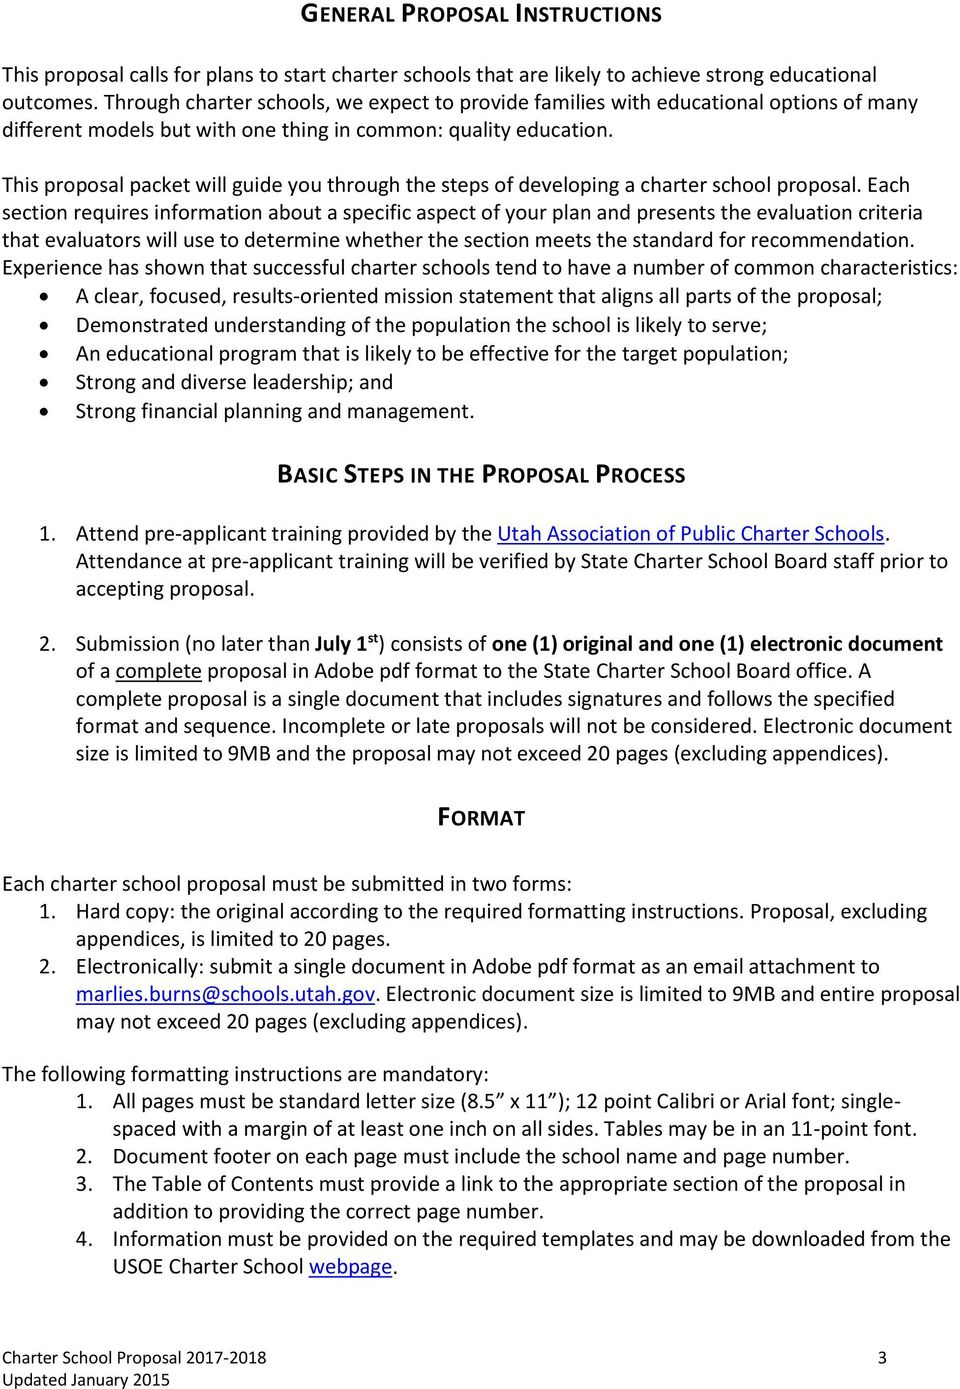 This proposal packet will guide you through the steps of developing a charter school proposal.